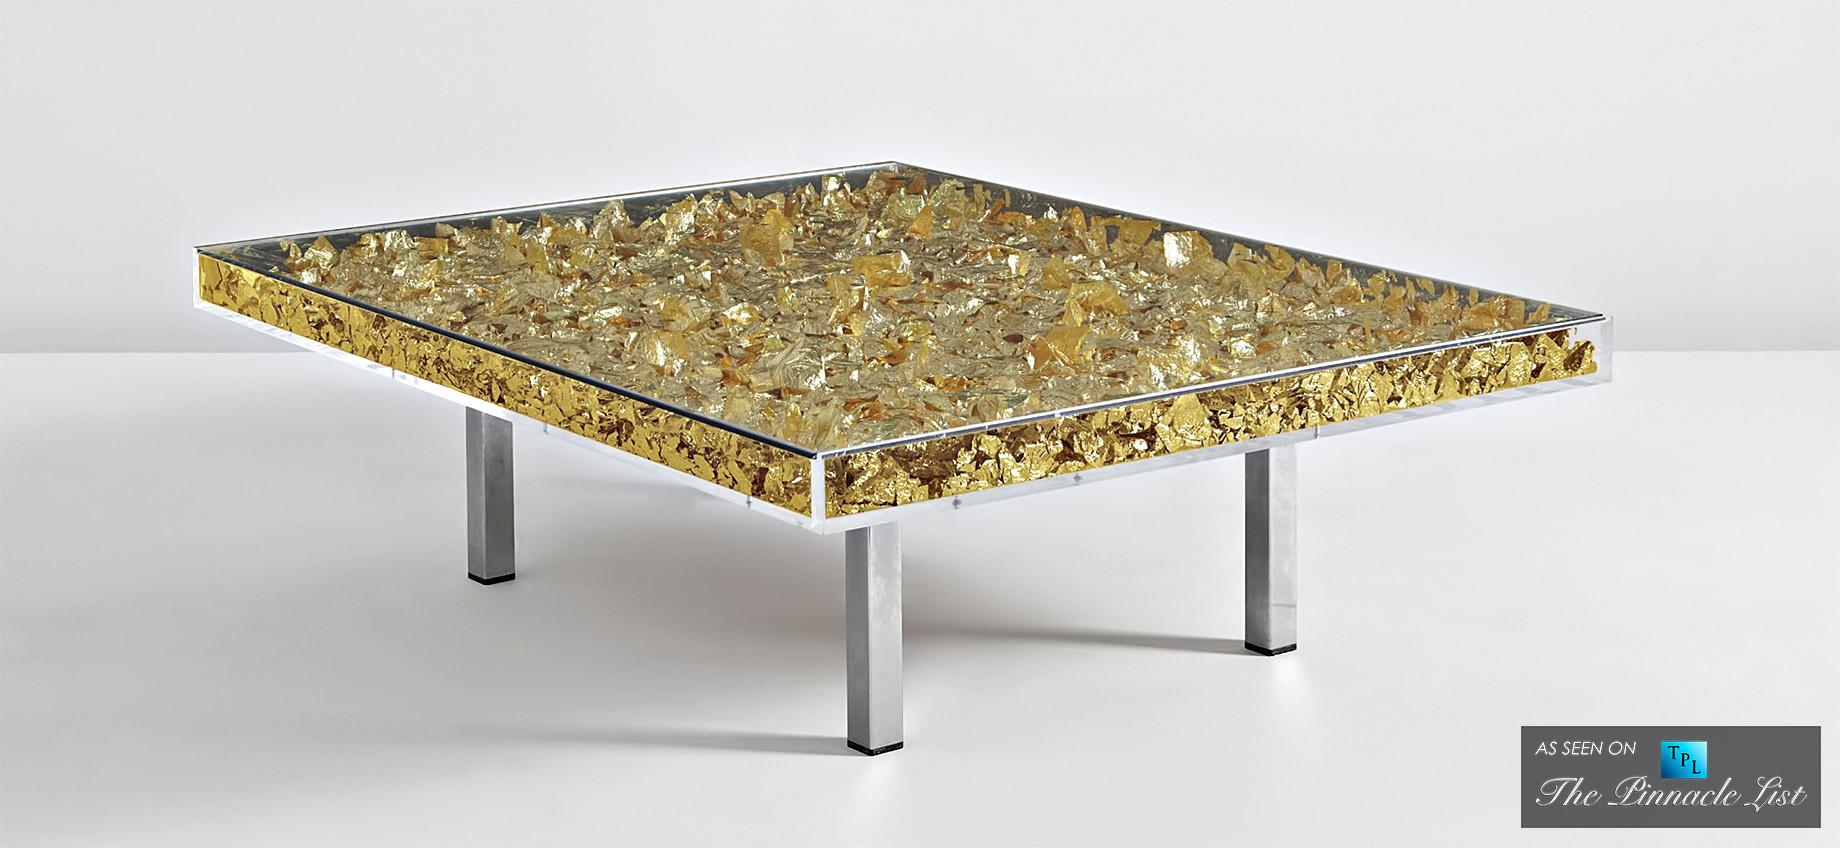 Contemporary Art Modern Luxury Furniture Spotlighting